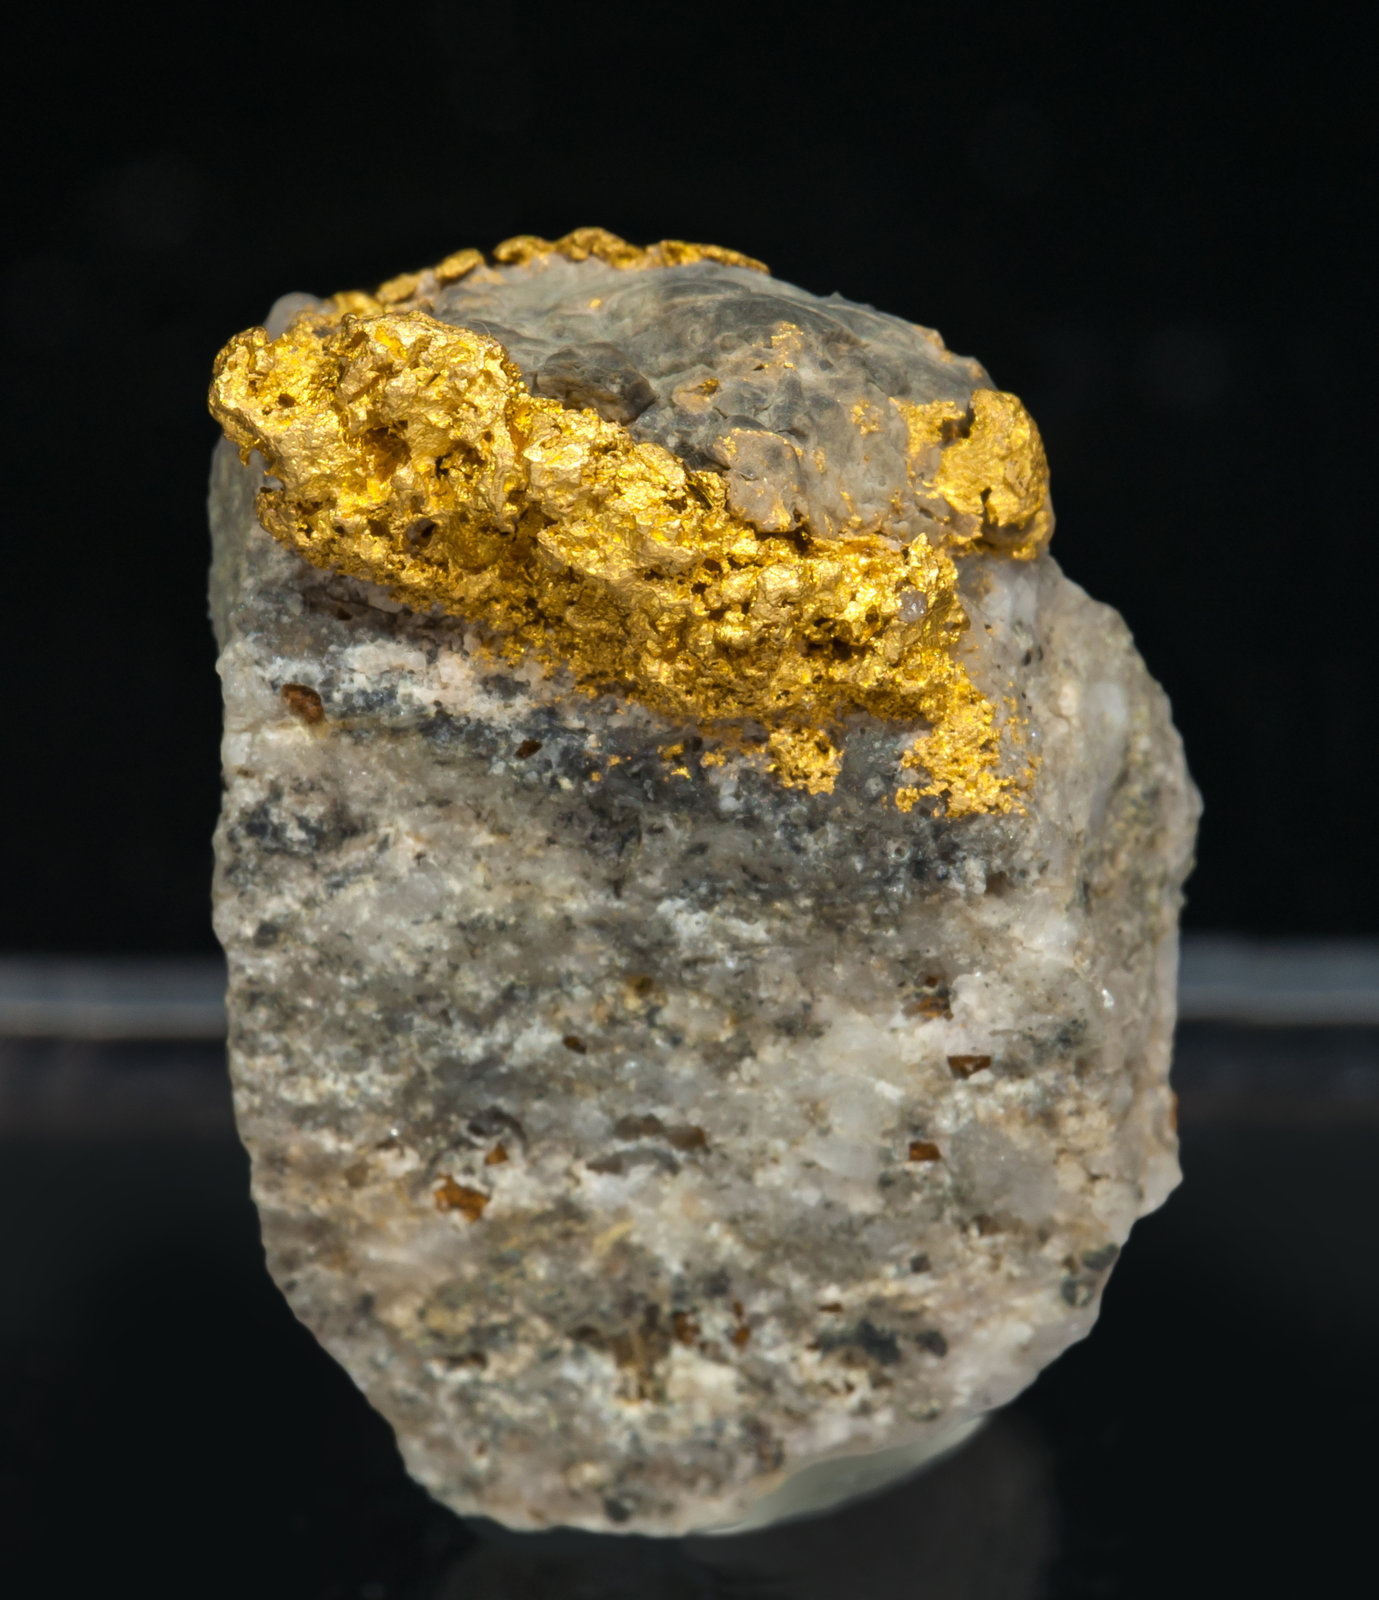 specimens/s_imagesAH4/Gold-NM68AH4f.jpg